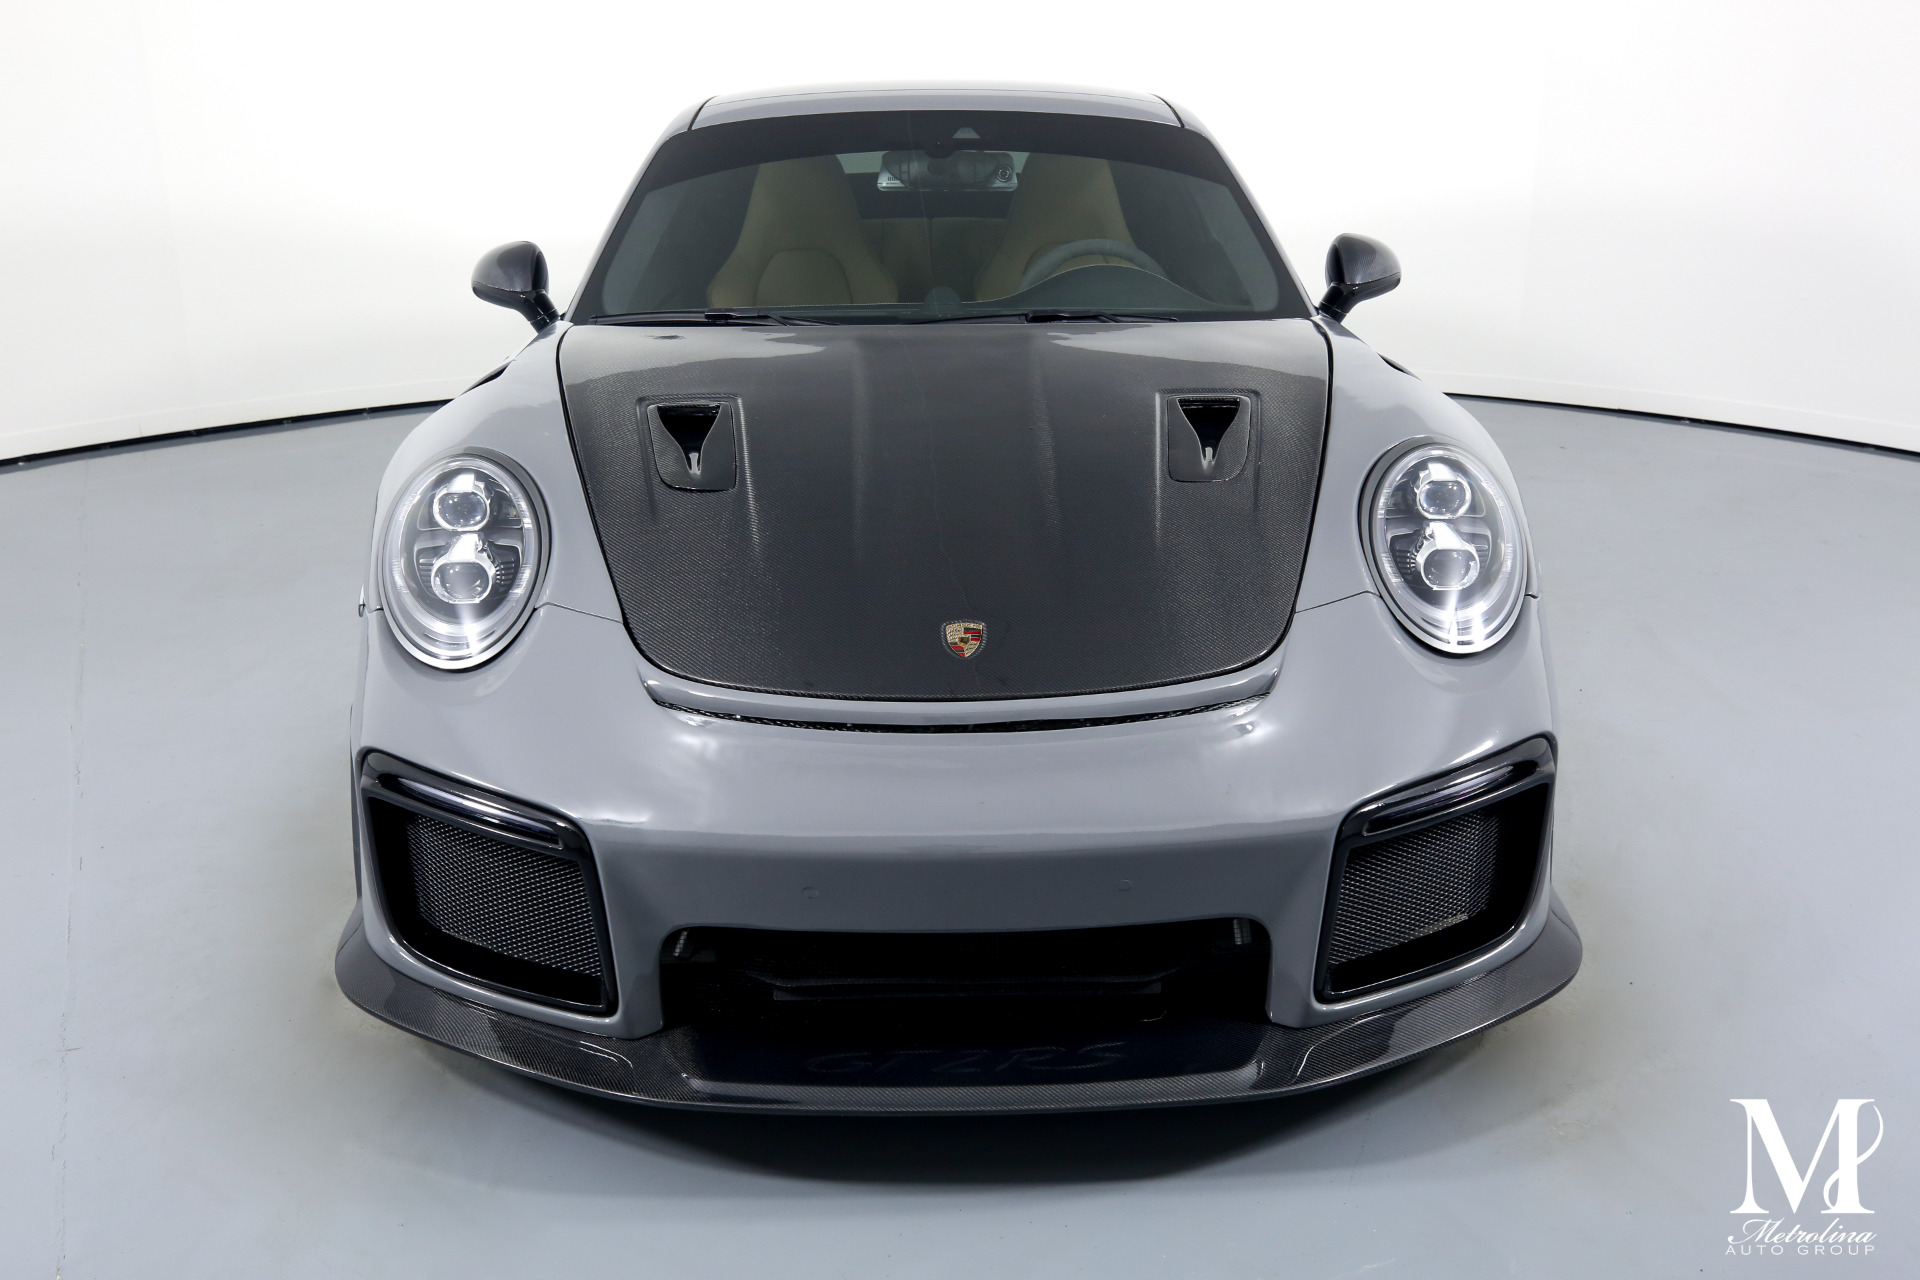 Used 2014 Porsche 911 Turbo S for sale Call for price at Metrolina Auto Group in Charlotte NC 28217 - 3